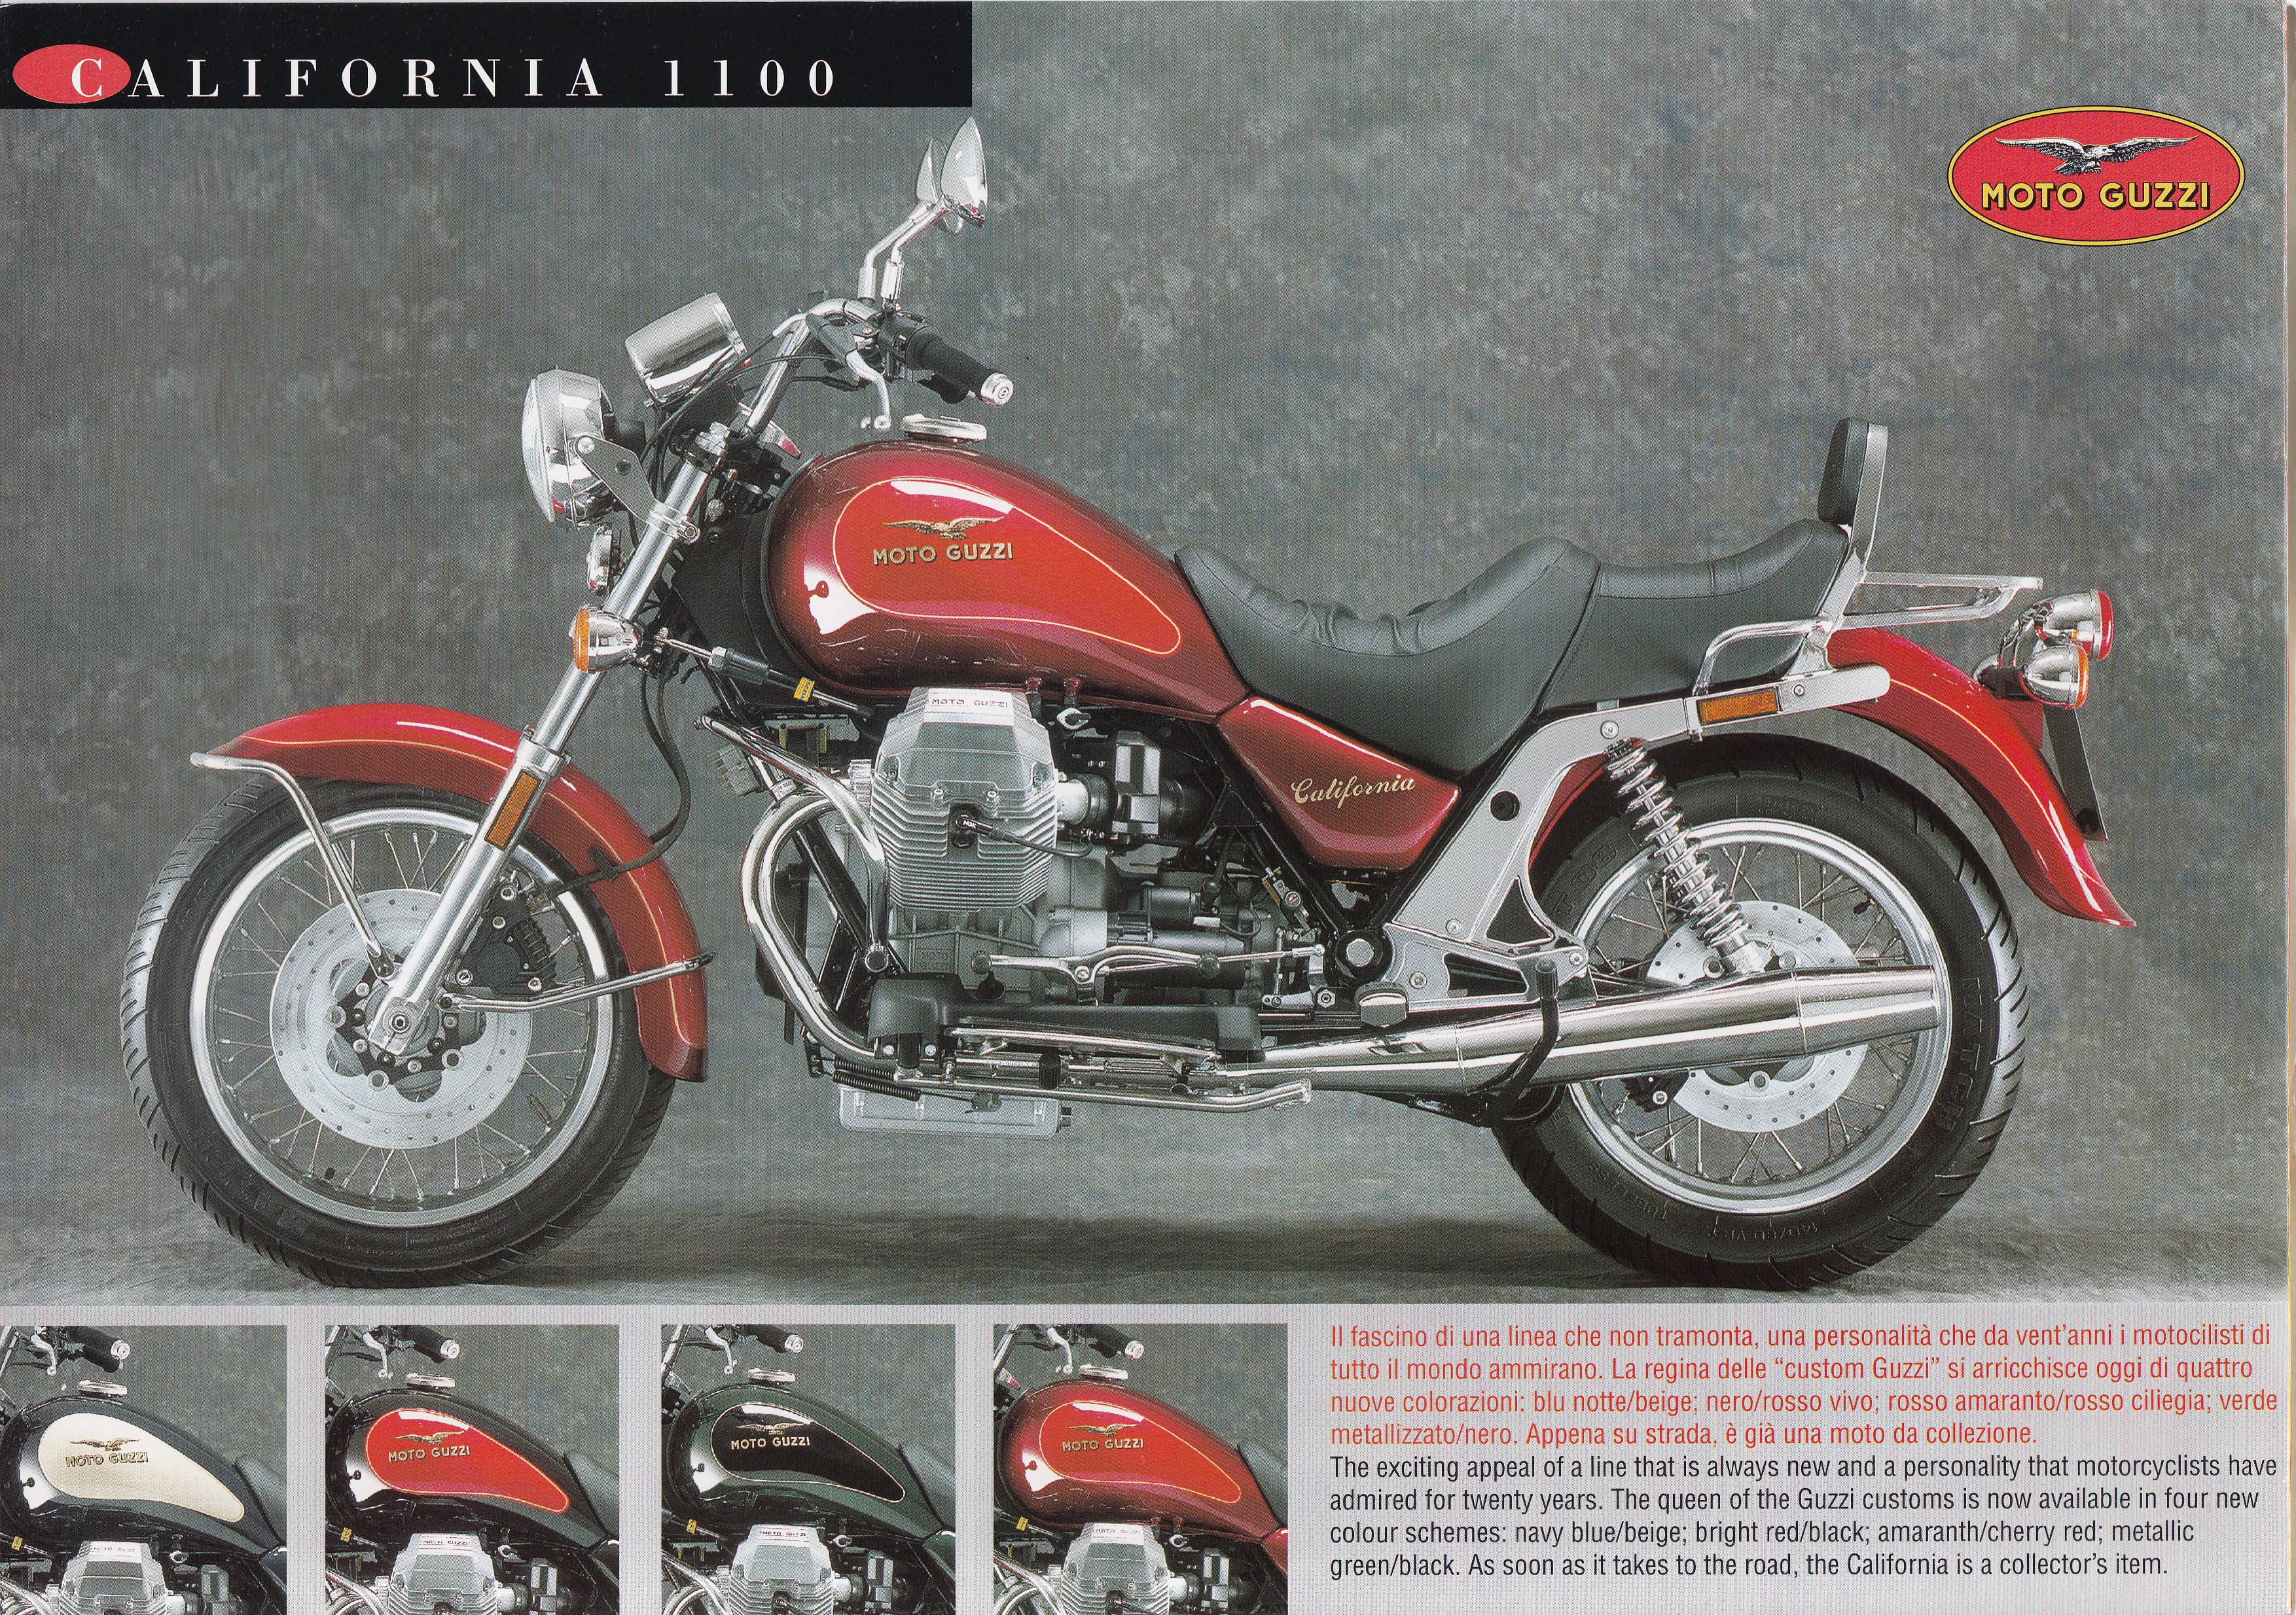 Brochure - Moto Guzzi California 1100